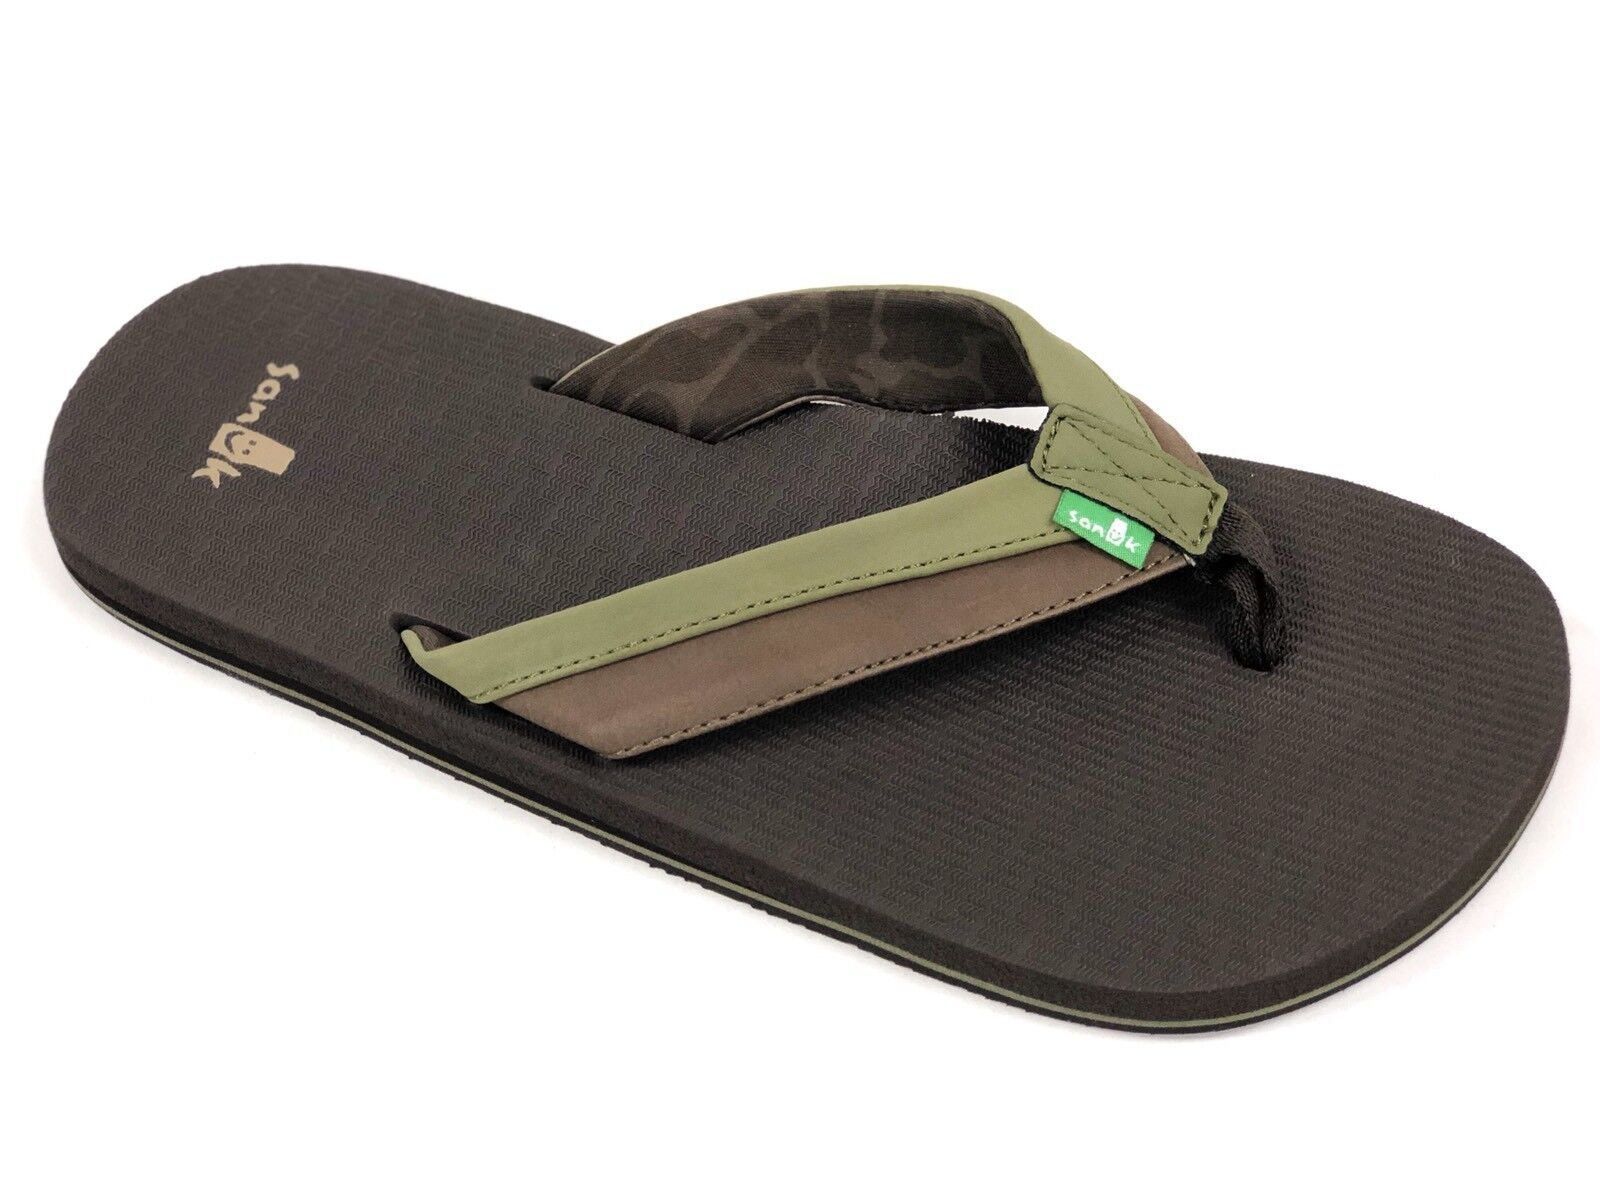 1905792d0b72c Sanuk Sanuk Sanuk Mens BEER COZY LIGHT Olive Dark Brown SMS10412 Casual Flip  Flop Sandal NEW b9f111